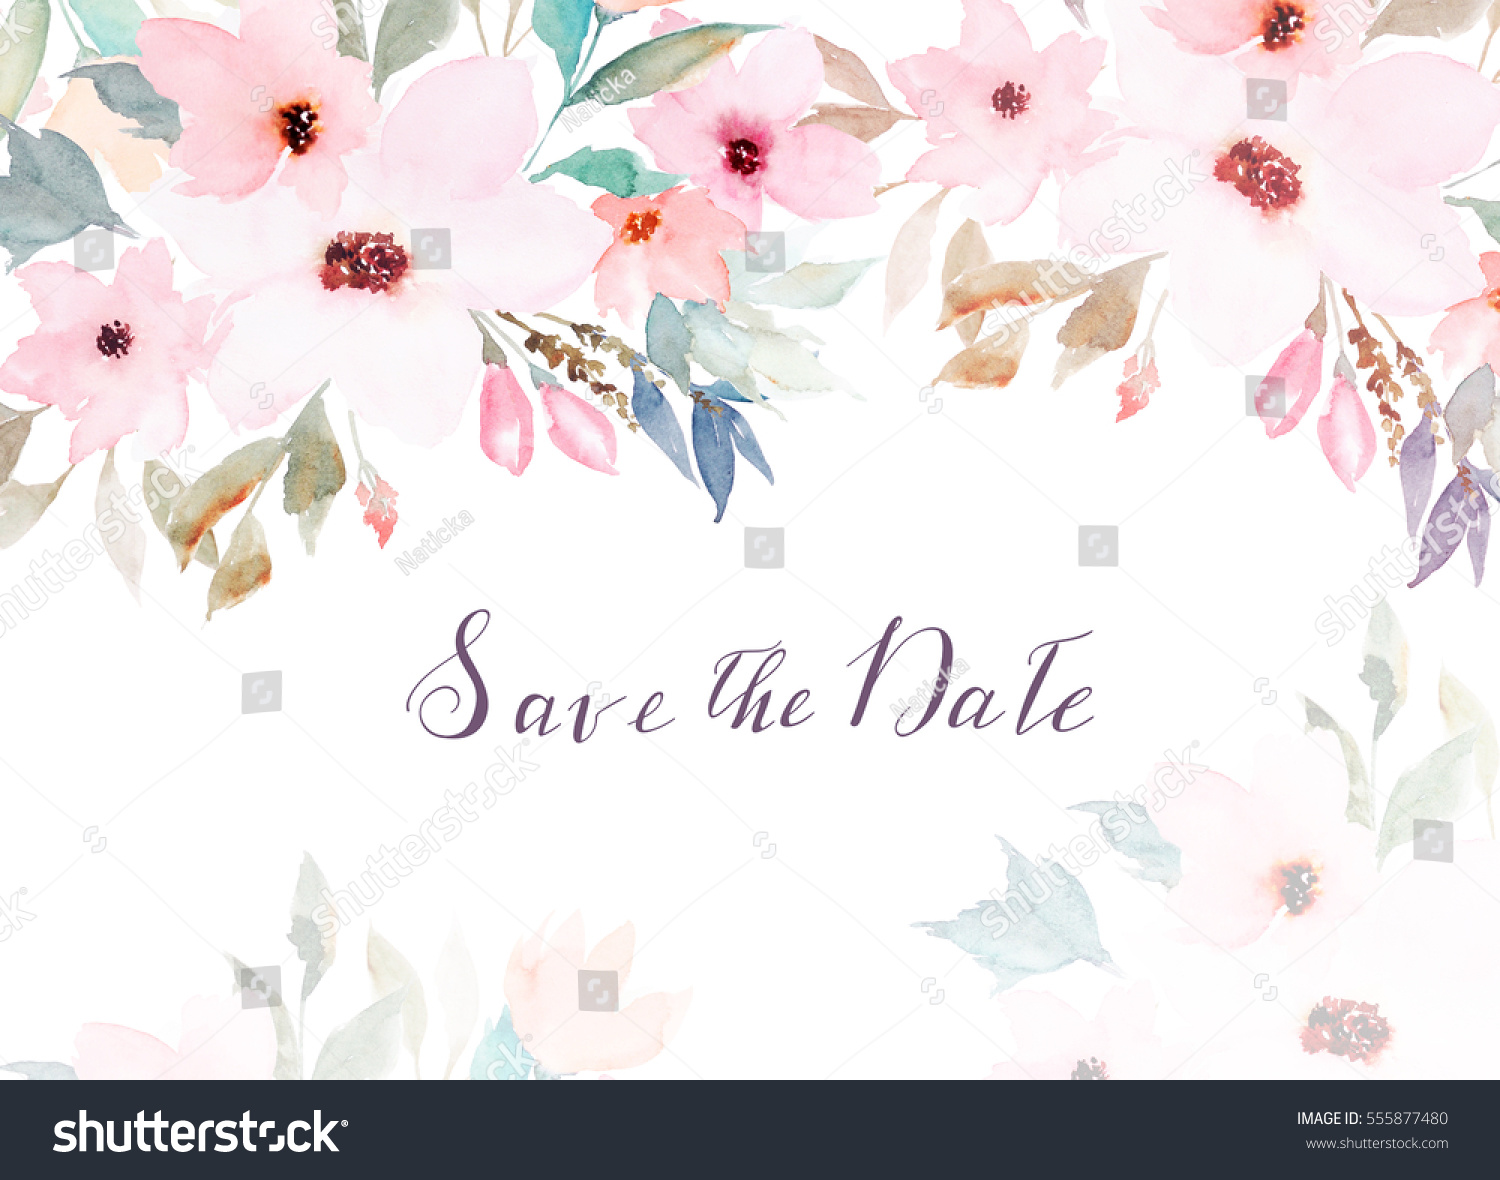 Watercolor Floral Template Wedding Cards Invitations Stock ...